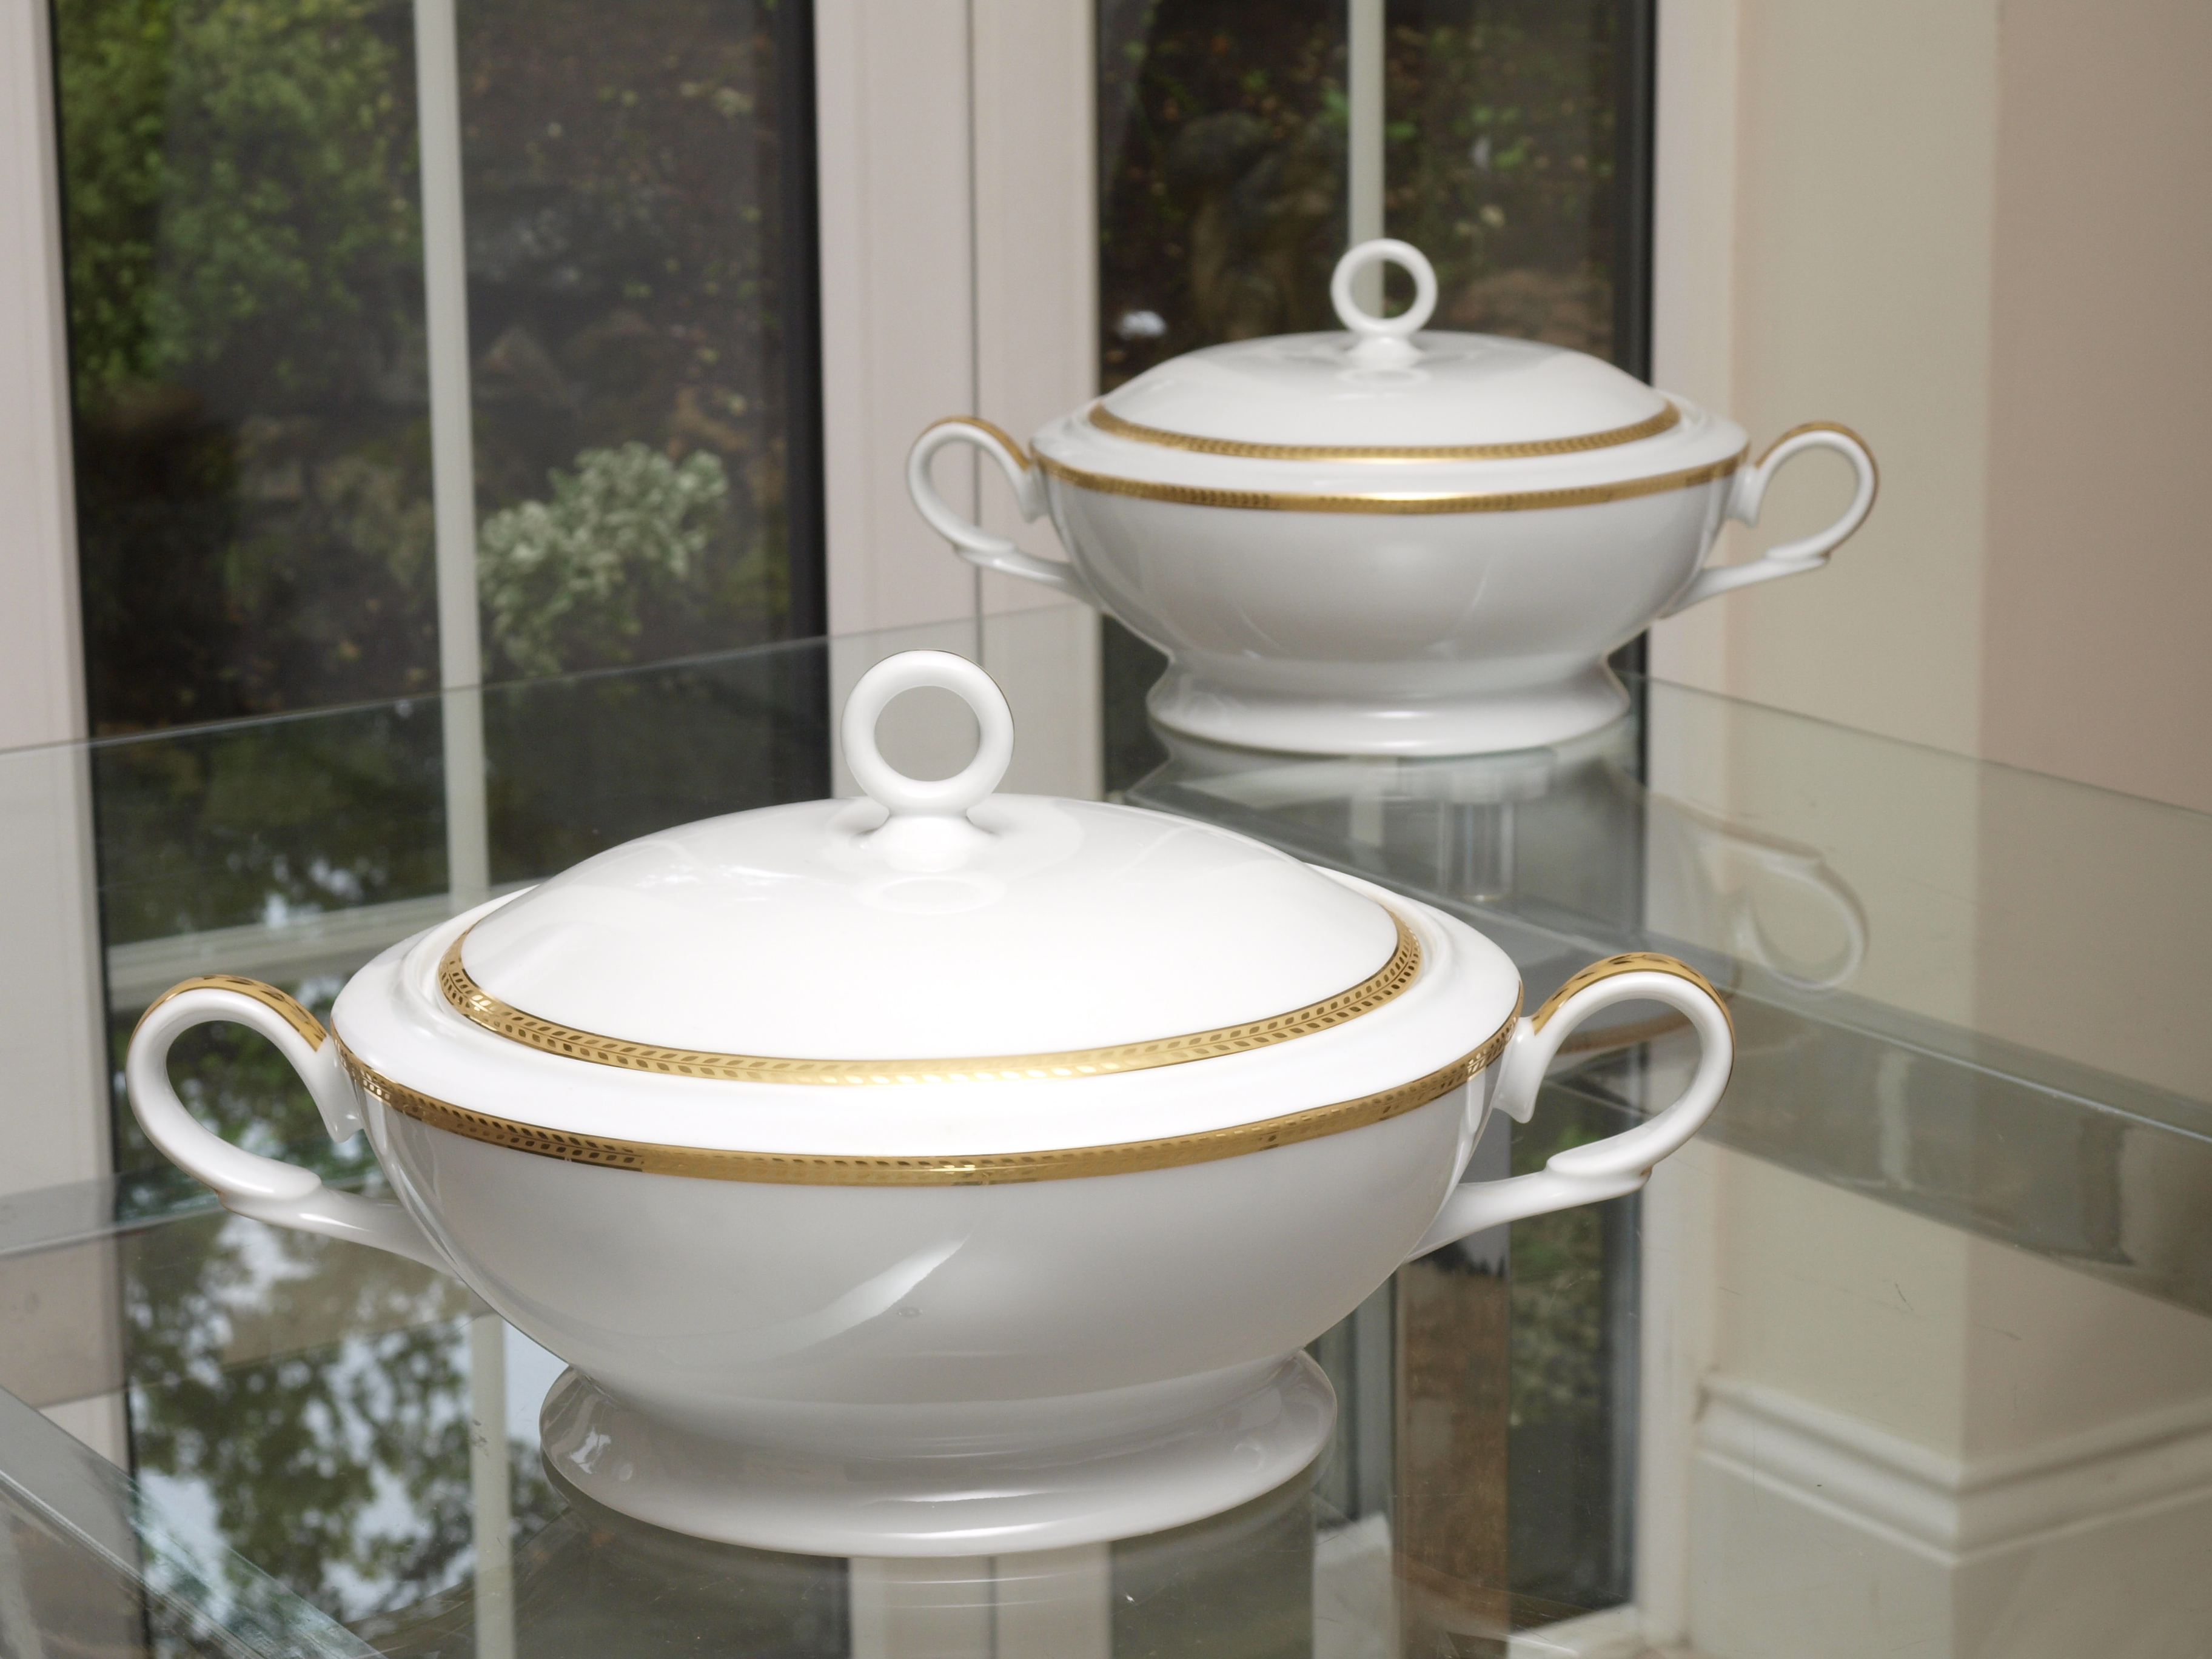 ETERNITY CLASSIC GOLD 96 PIECE DINNER SERVICE